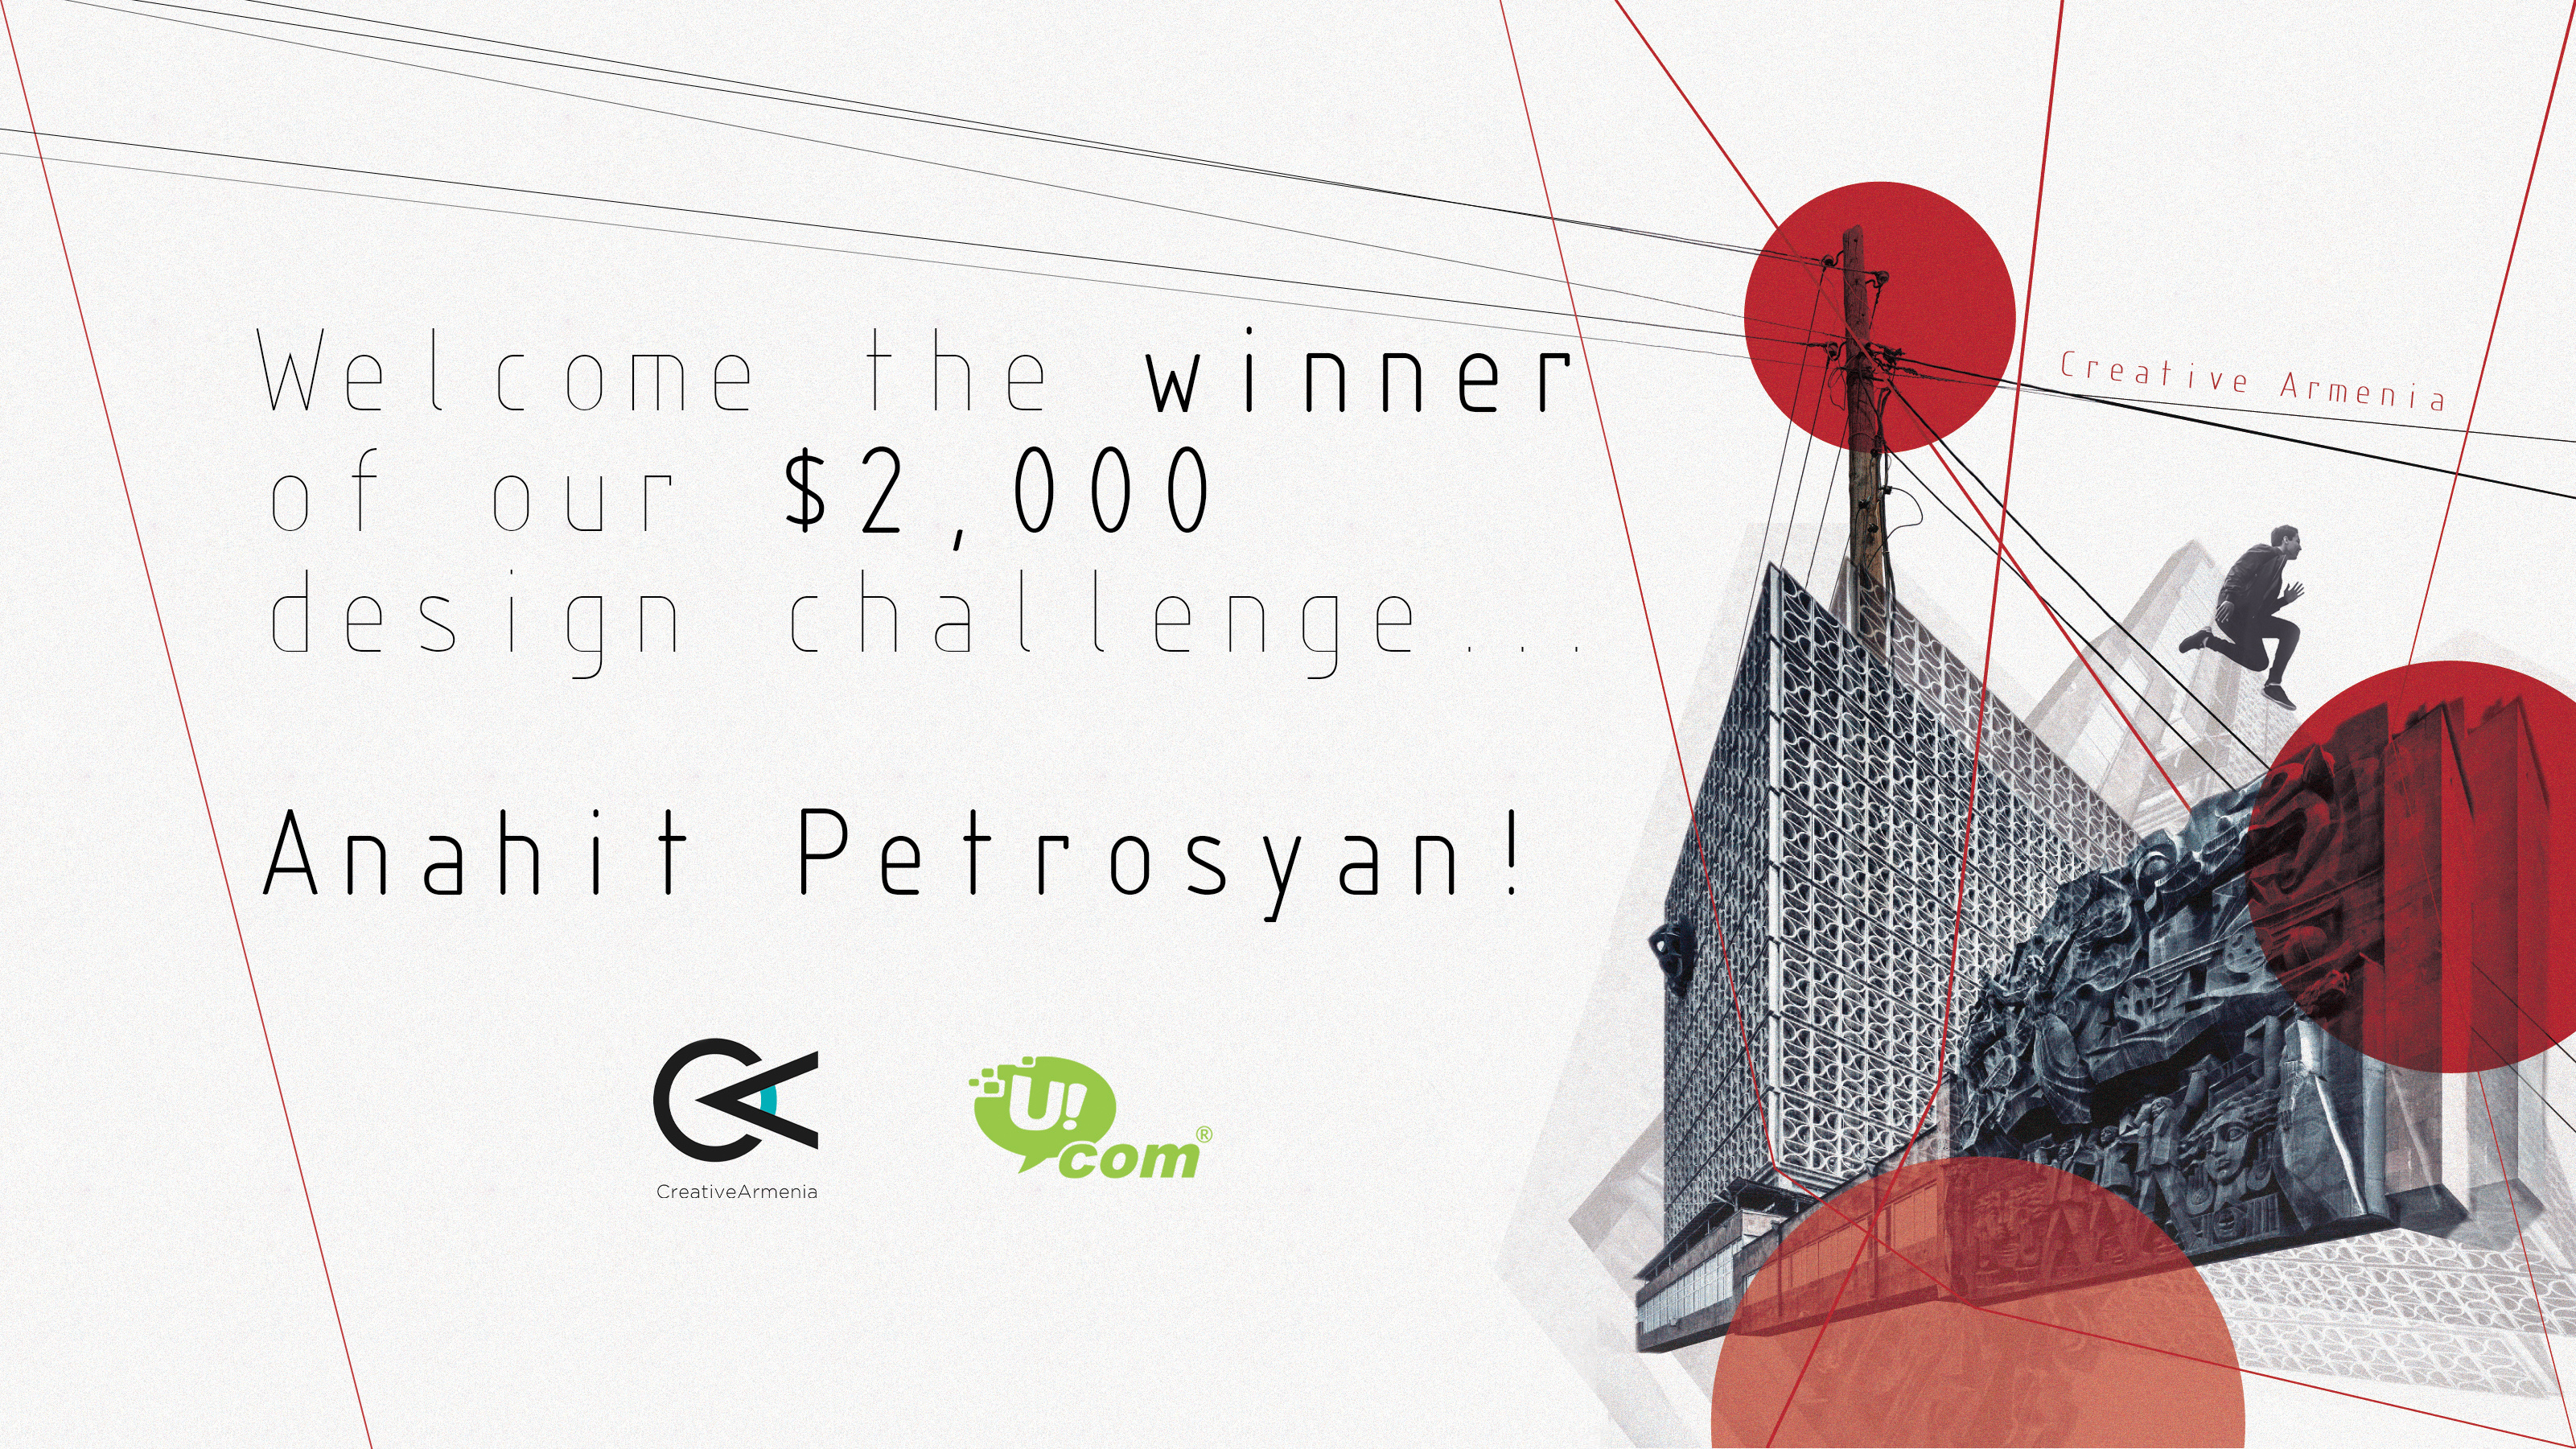 Creative Armenia and Ucom announce winner of $2,000 movie poster challenge